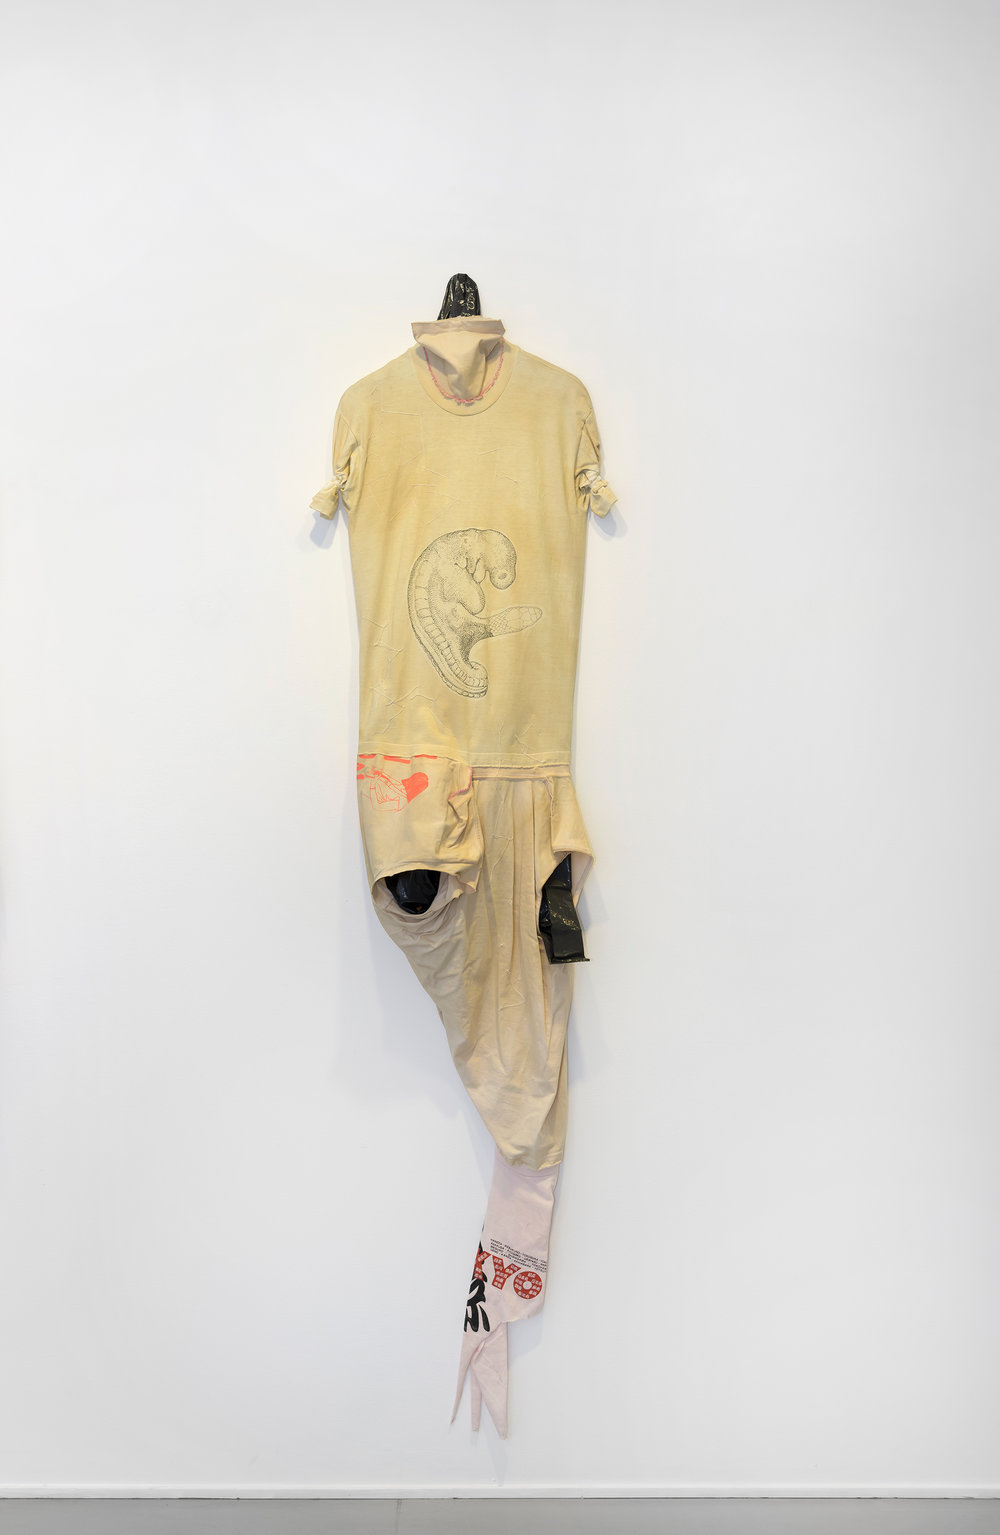 Leif Holmstrand,  Costume for a New Tail (It's a Girl)  (2015), textile wall sculpture: T-shirt fabric, print depicting human fetus plus snake head, garbage bag plastic, pearls et cetera. Foto: Øystein Thorvaldsen